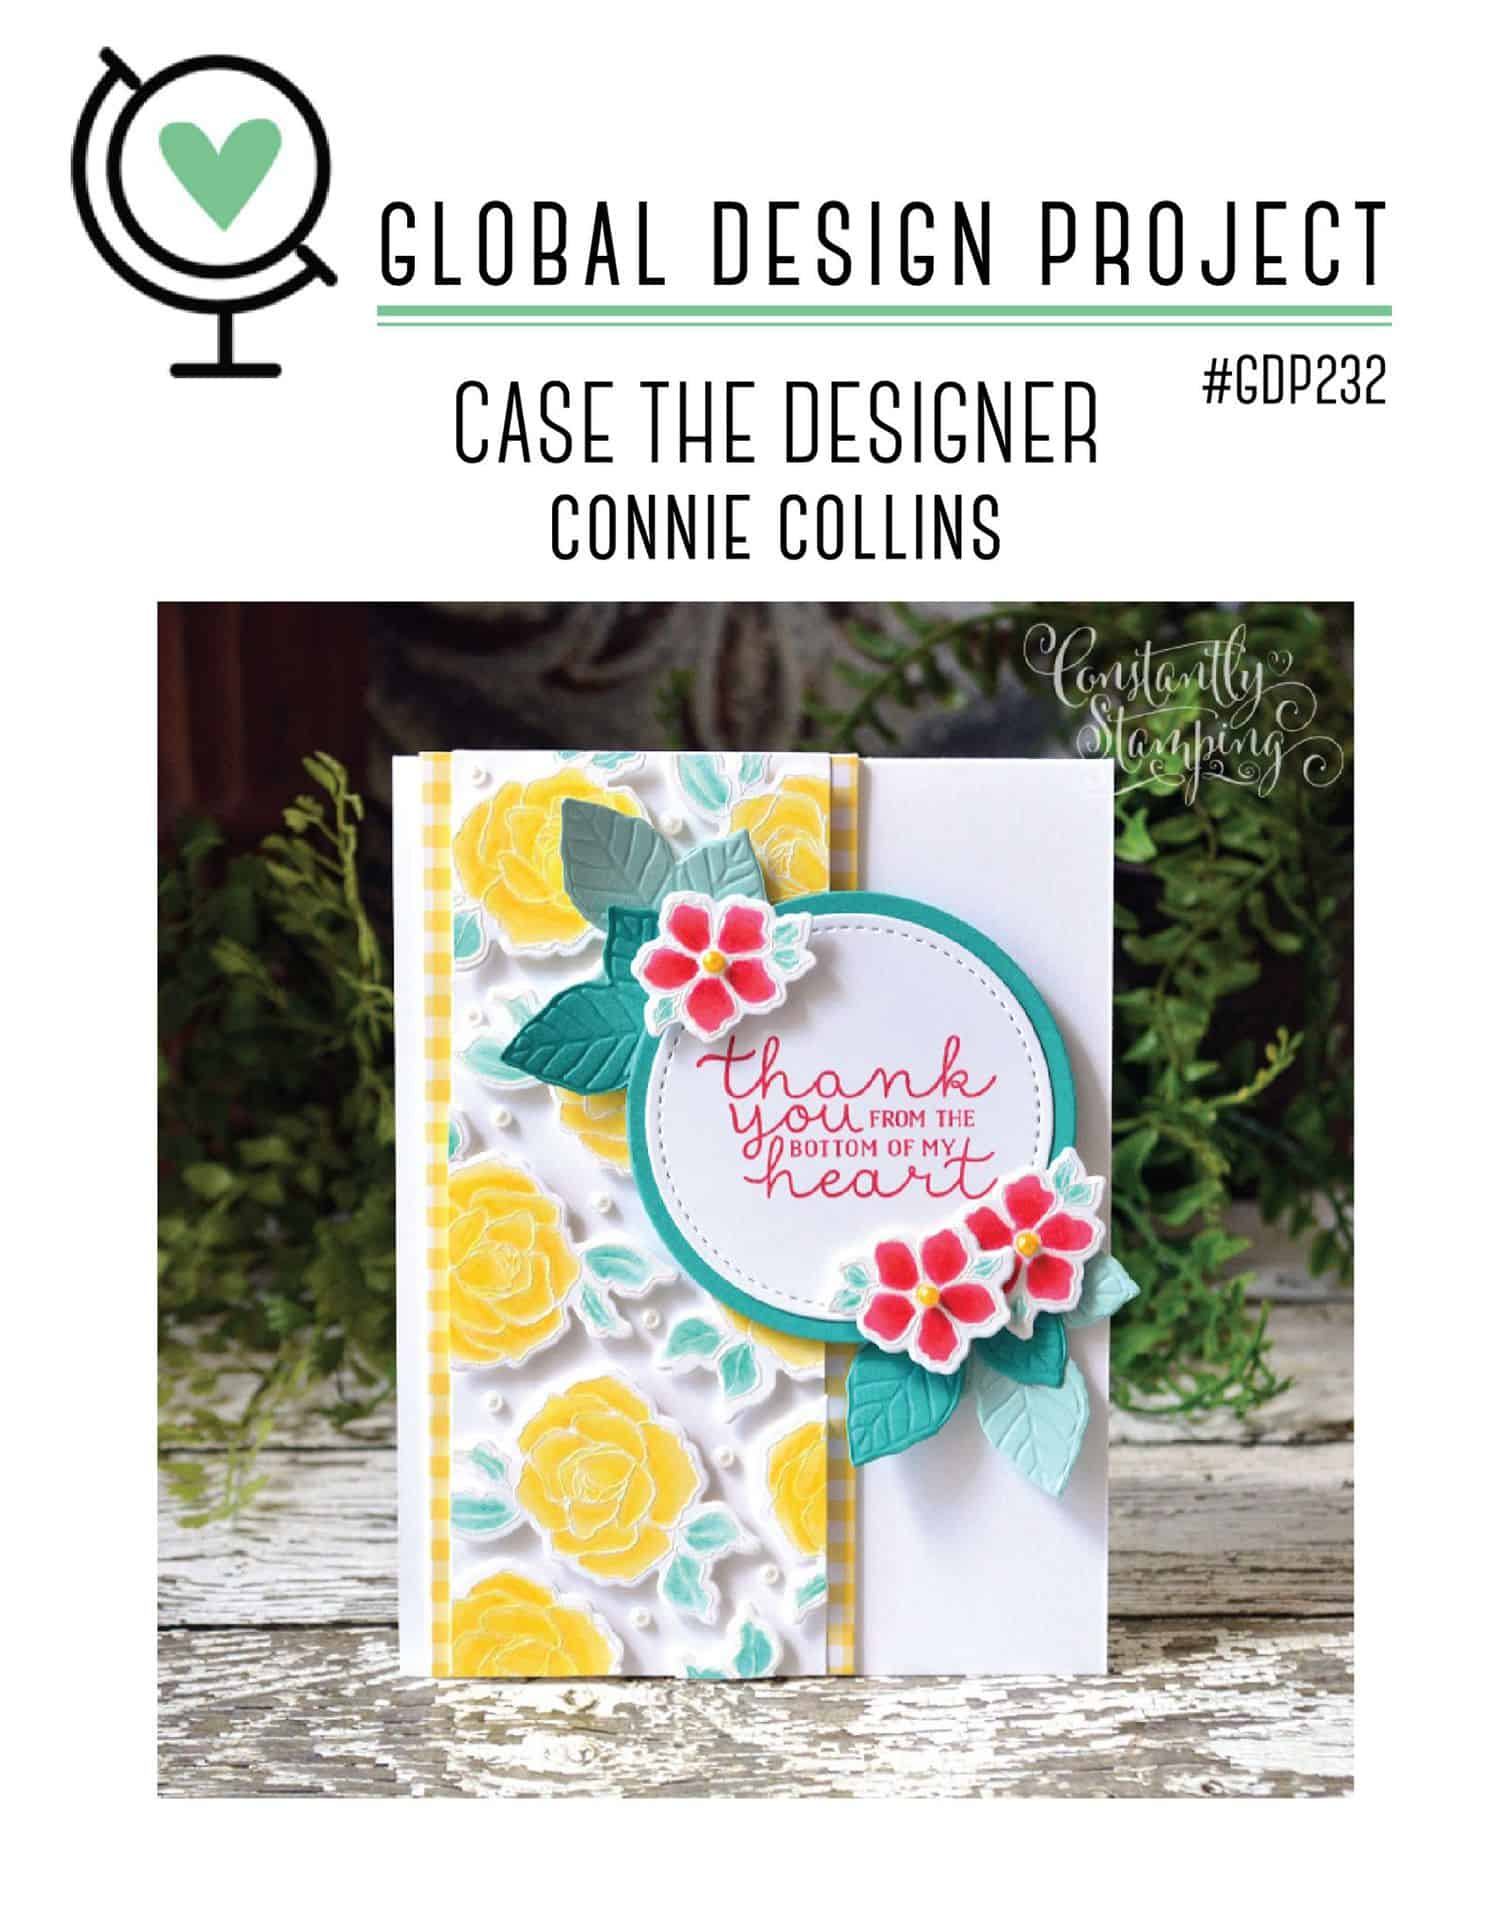 Connie Collins: Stampin' Up! Design Challenge gpd232